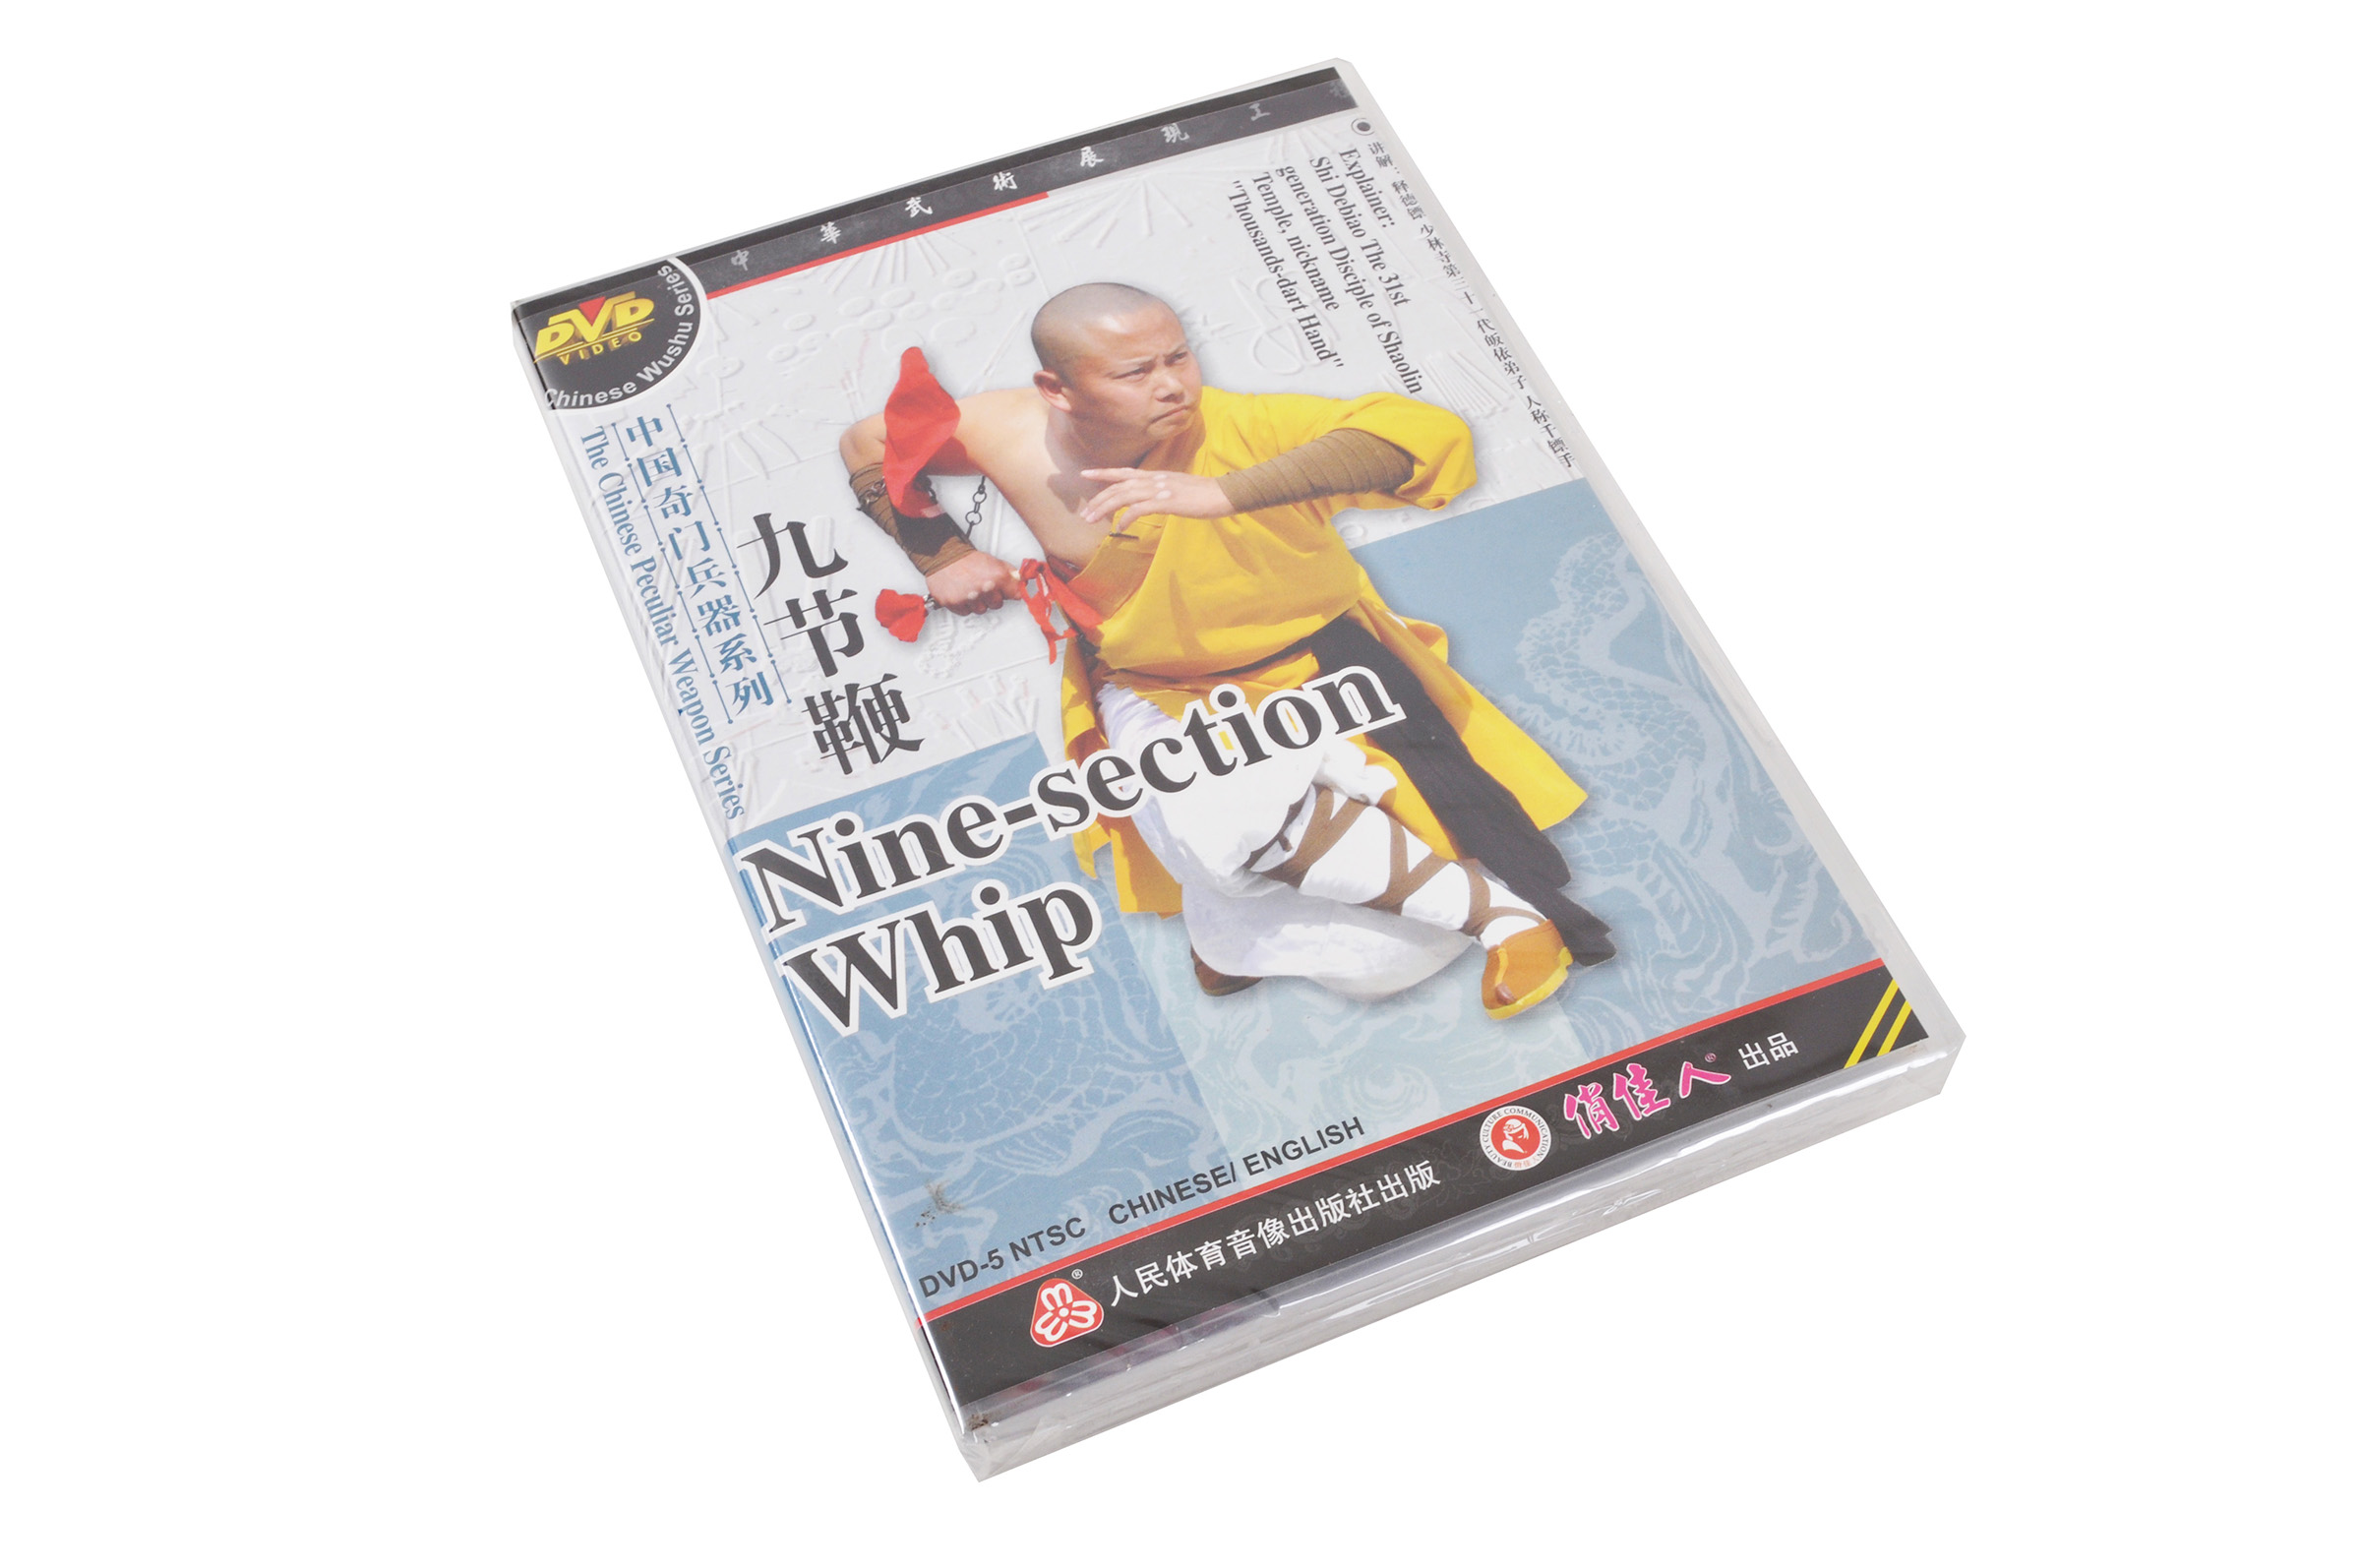 DVD Nine Section Whip Chain